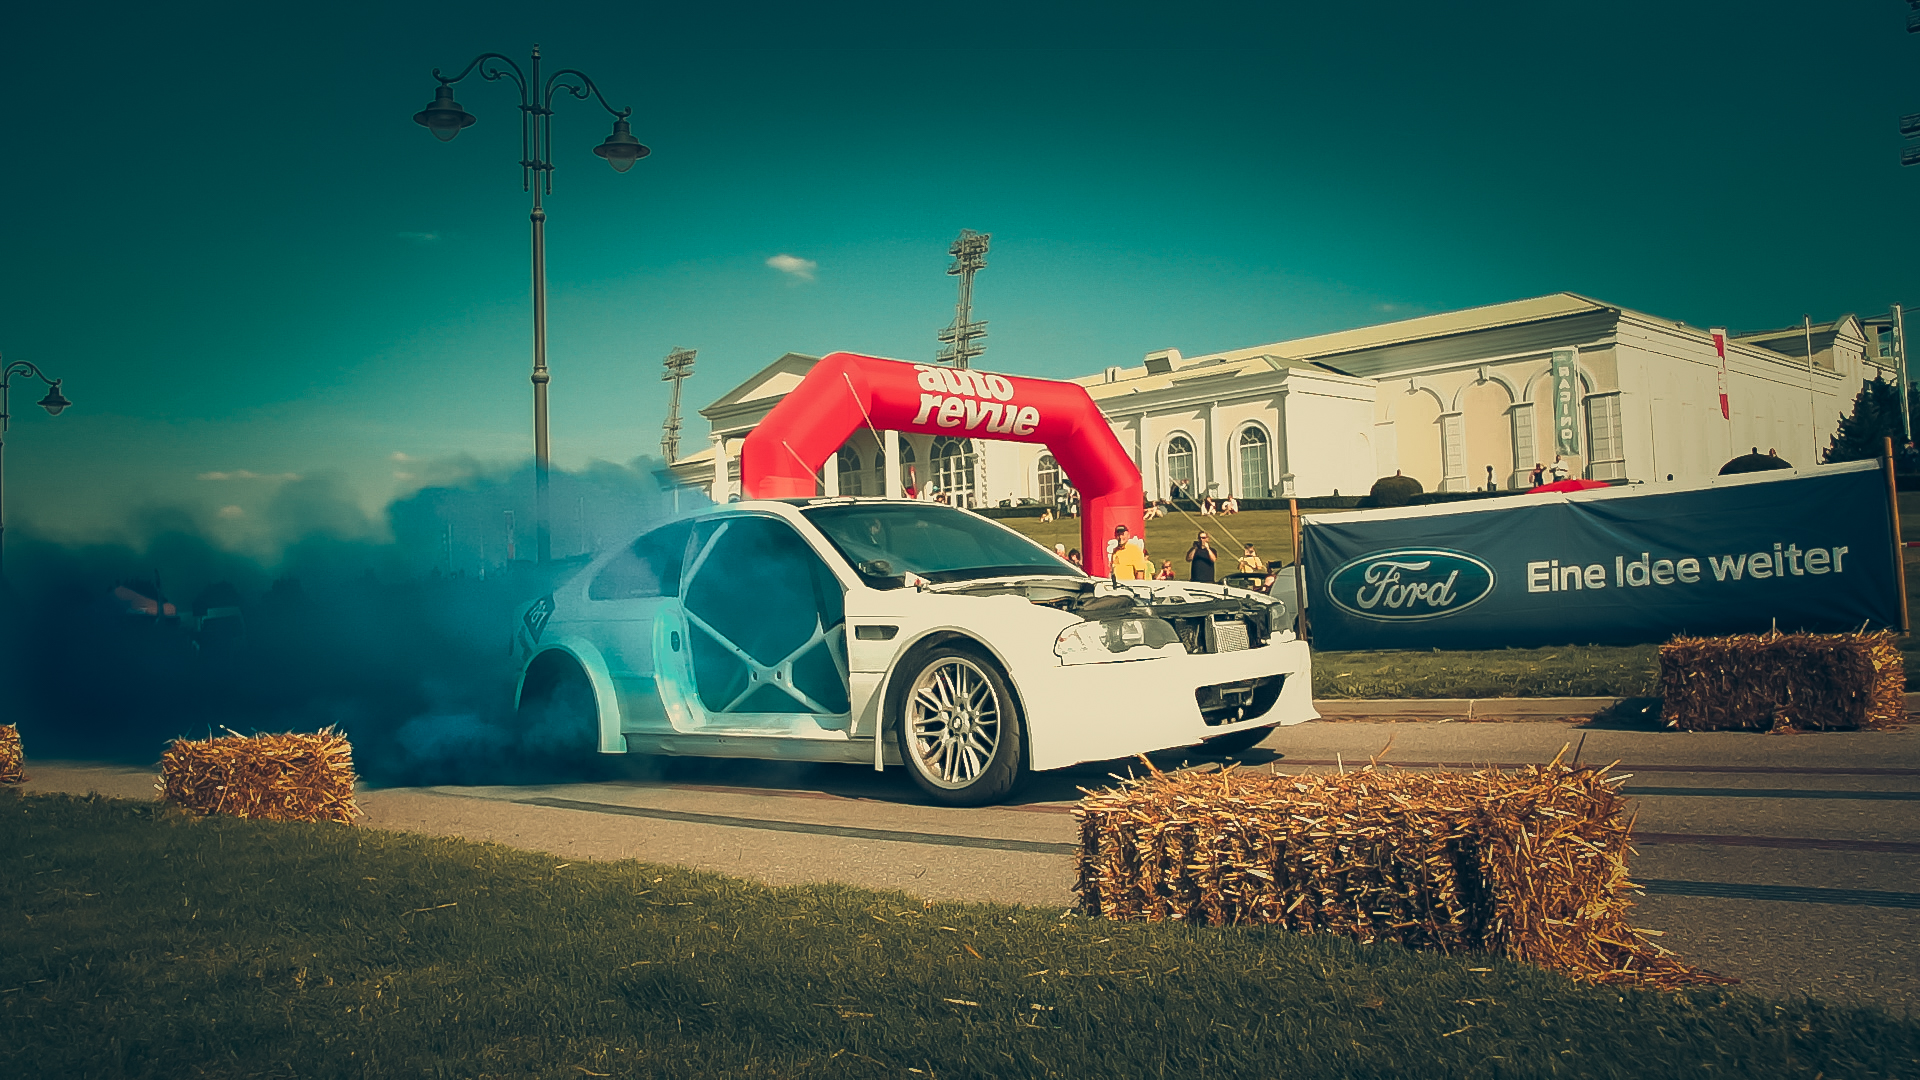 Speedparty_2016_AUTrenalinMEDIA-23.jpg